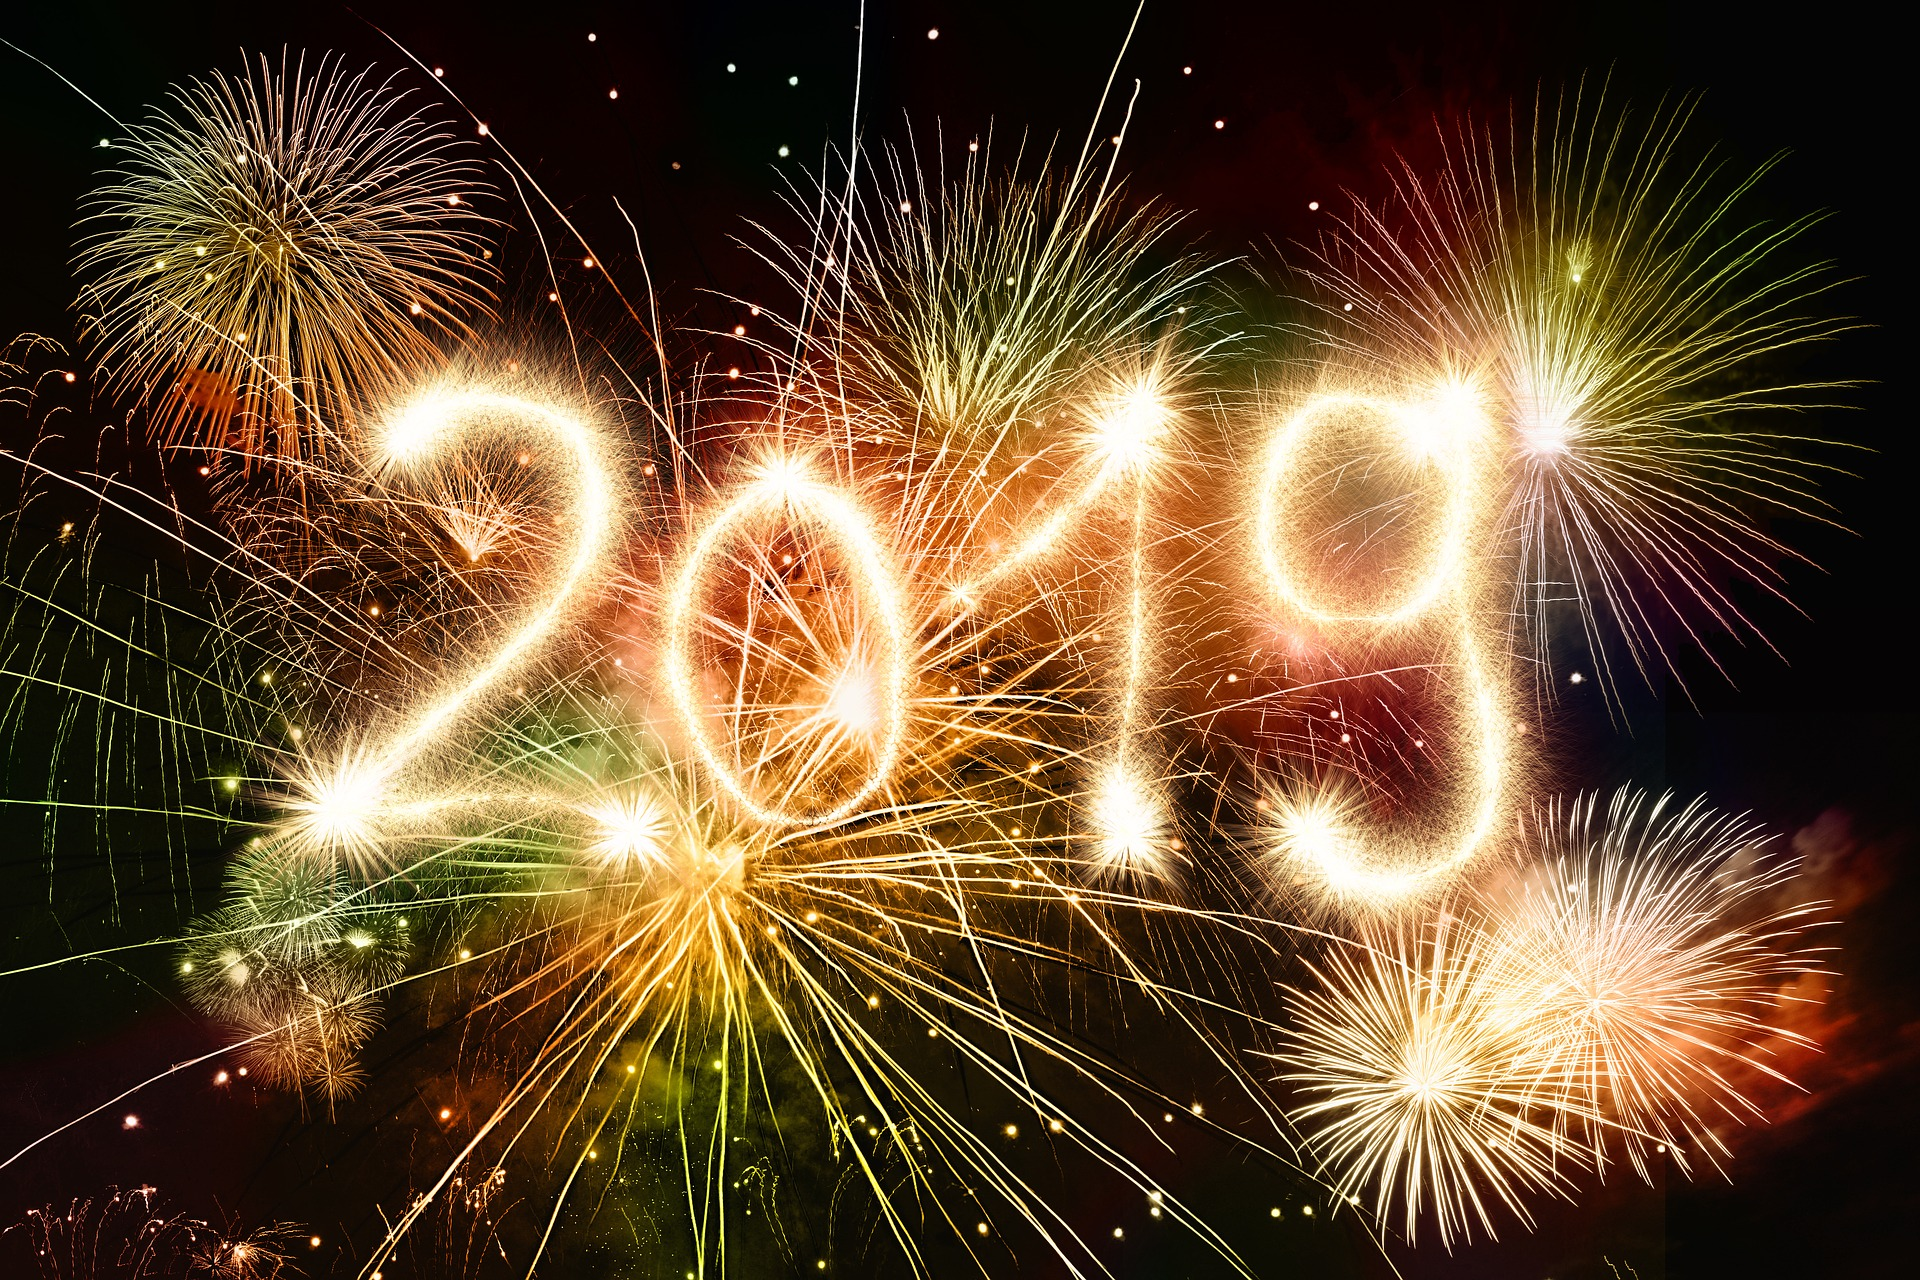 New Years Eve Events 2019 6 New Year's Eve parties you won't want to miss in Birmingham